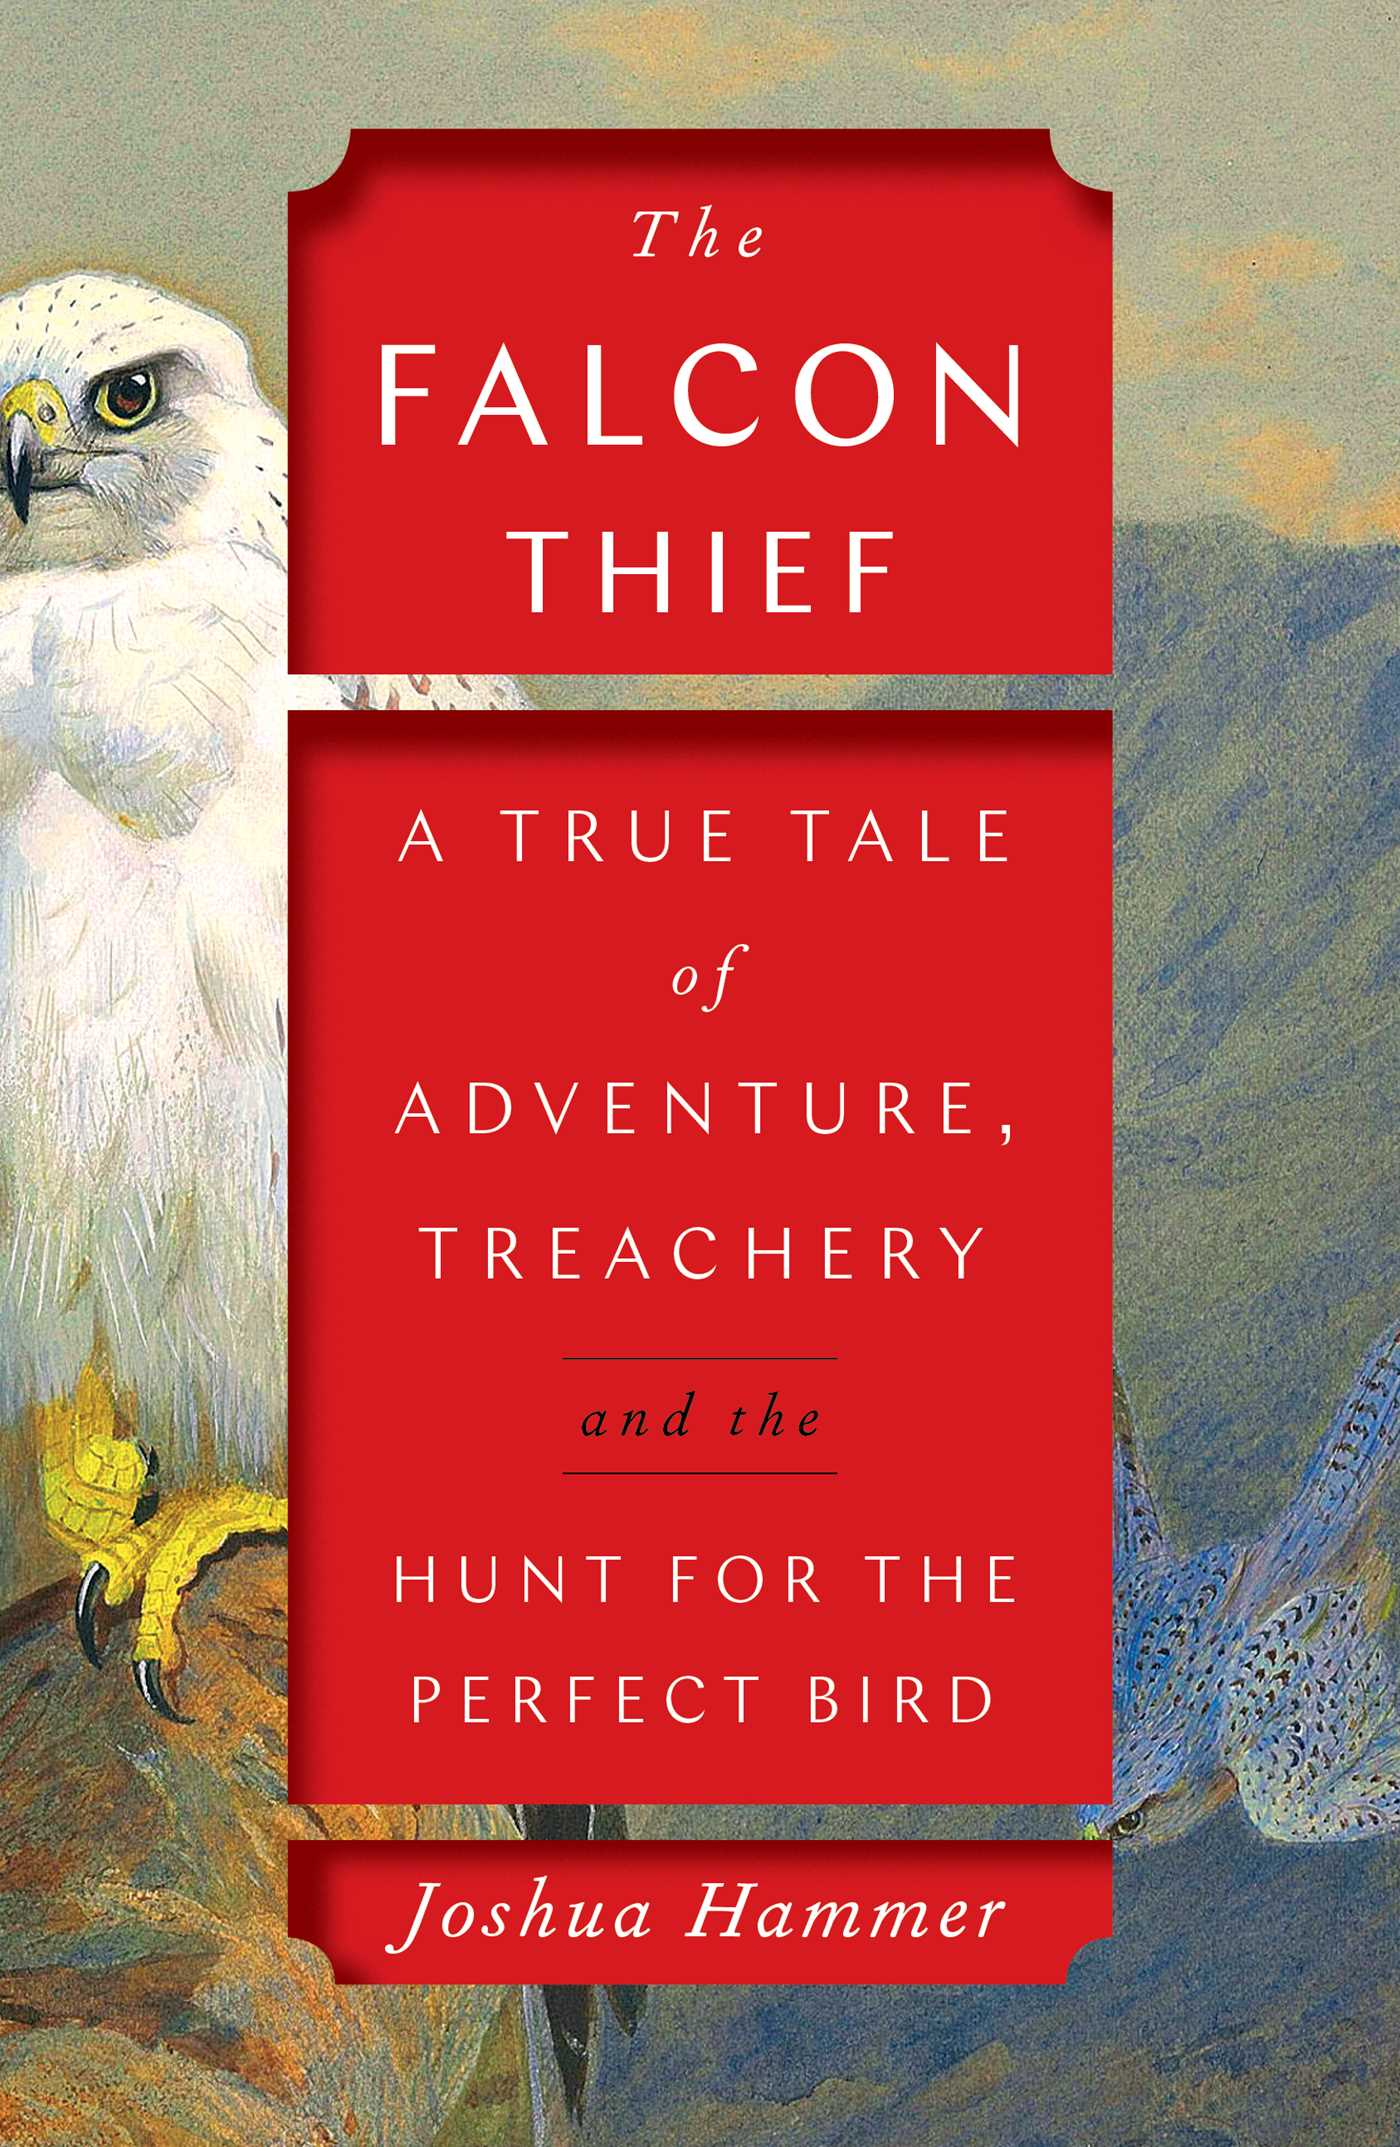 The falcon thief a true tale of adventure, treachery, and the hunt for the perfect bird